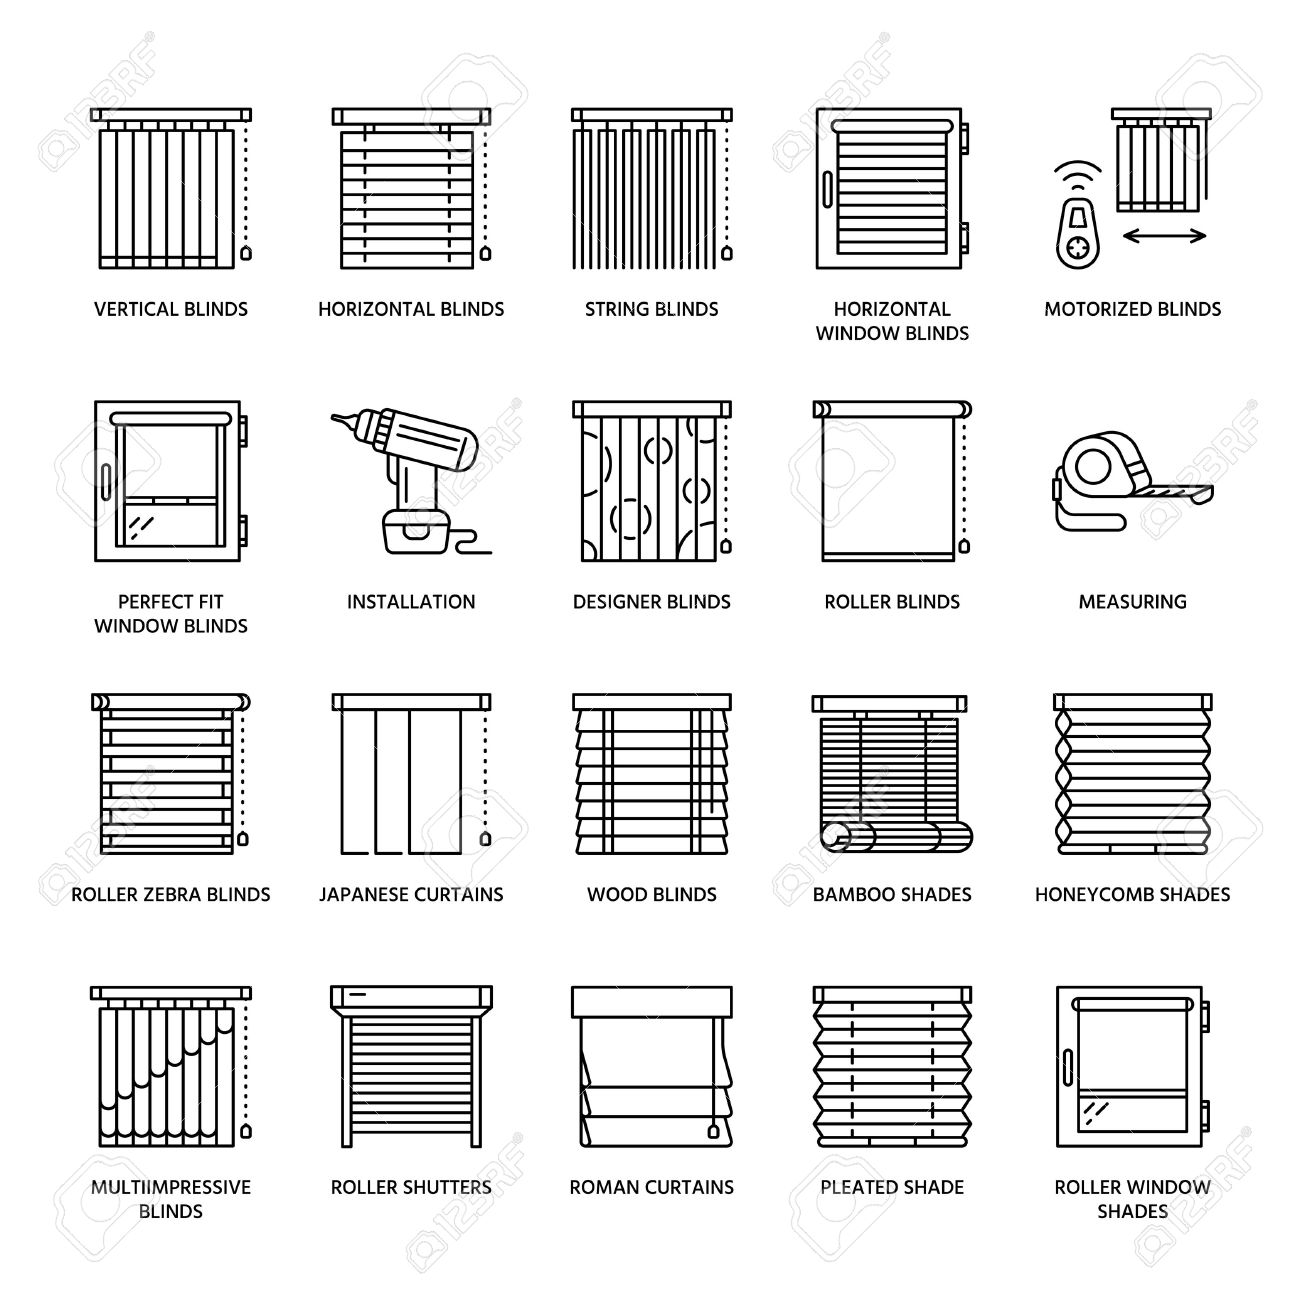 rak screen parts down blinds levolor well installation snazzy list alongside tag lovely or roller shades mor designer the installing vertical pull as replacement window